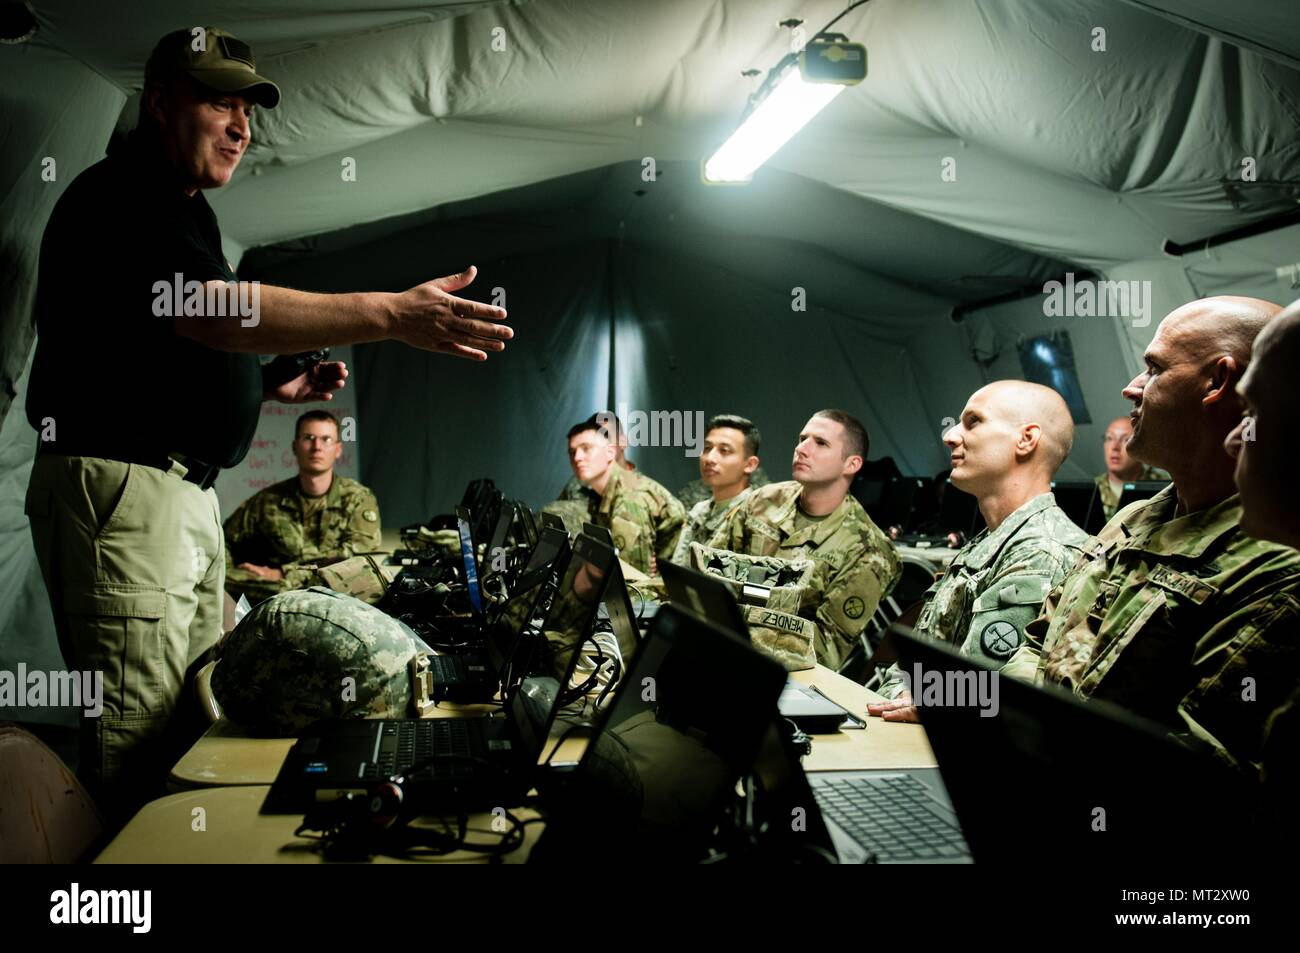 On July 16, 2017, Soldiers with the West Virginia Army National Guard's 863rd and 154th Military Police Companies listen to a briefing from Patrick Poirier, a business development manager for L3 Technologies, about the thermal night vision equipment the Soldiers will test during the 2017 National Jamboree on Summit Bechtel Reserve near Glen Jean, W.Va. The 2017 National Jamboree is being attended by 30,000 scouts, troop leaders, volunteers and professional staff members, as well as more than 15,000 visitors. Approximately 1,200 military members from the Department of Defense and the U.S. Coast - Stock Image